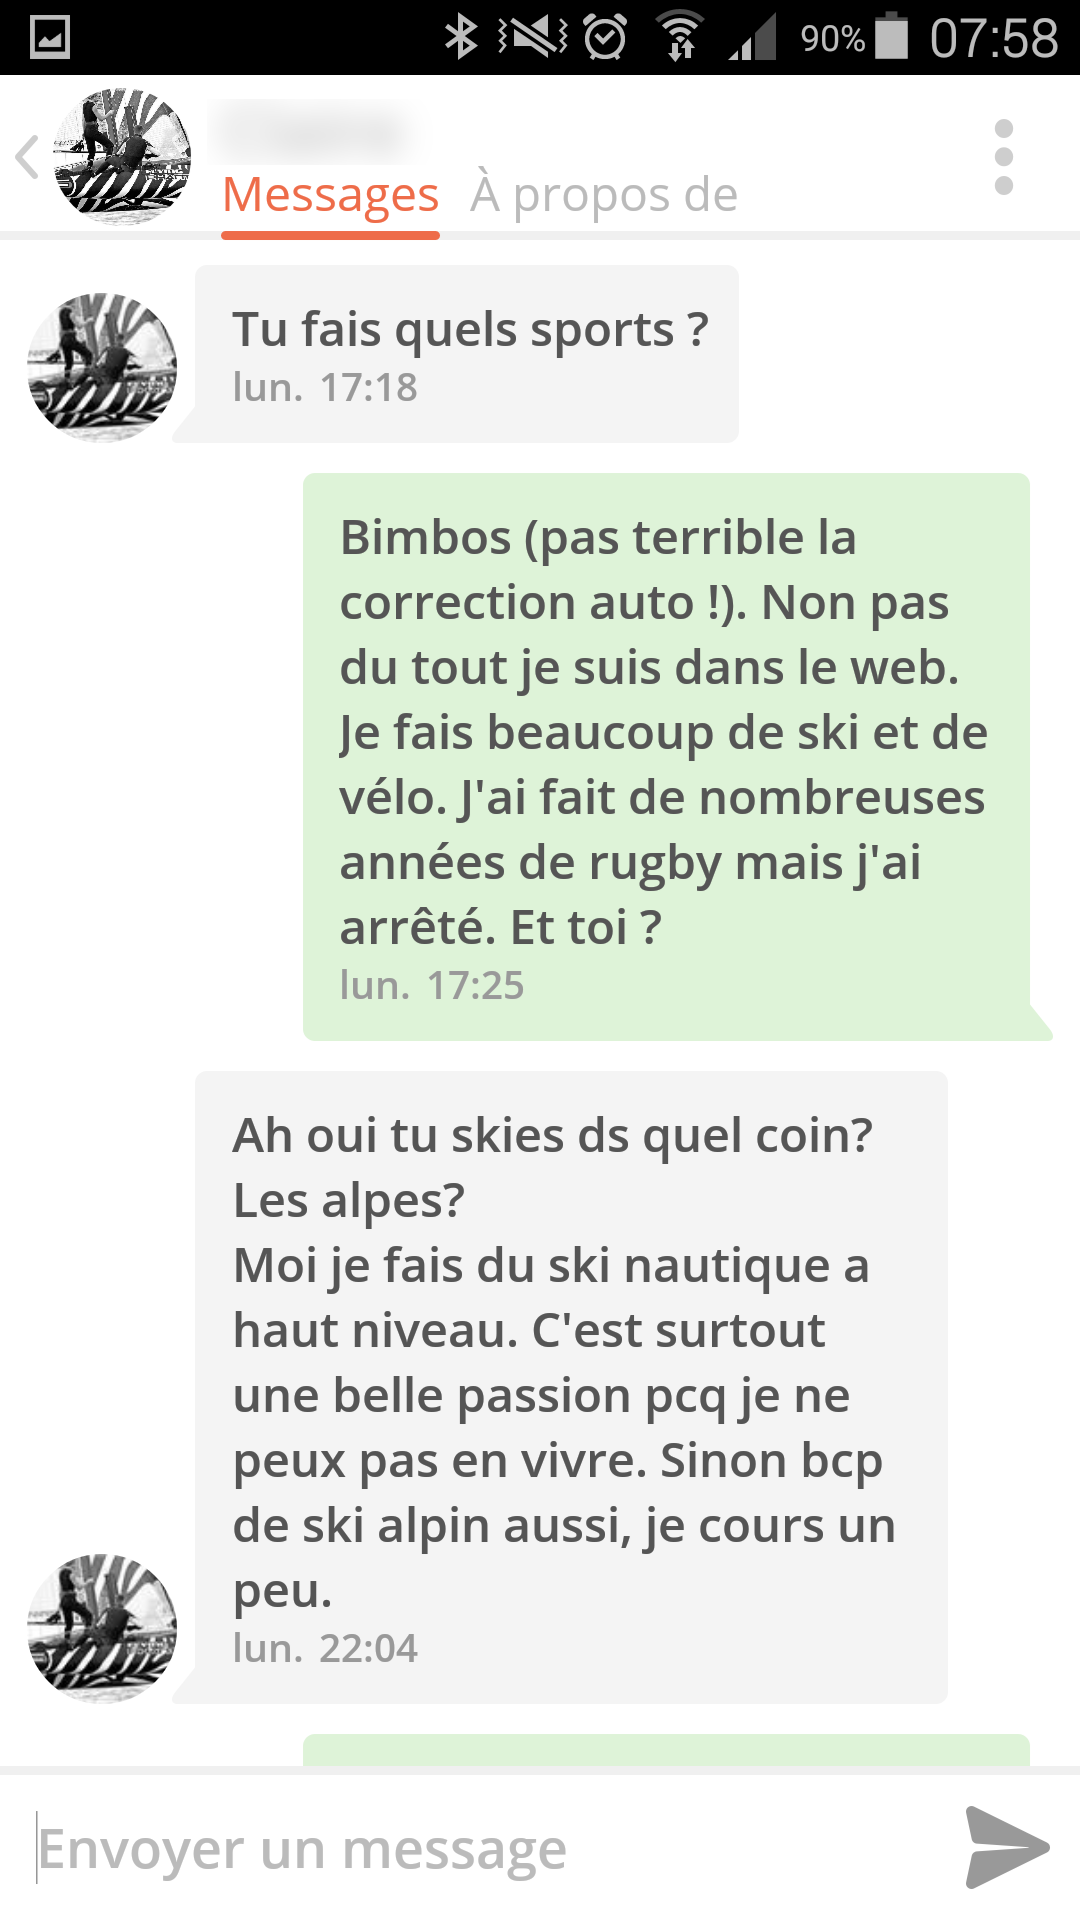 1er message site de rencontre exemple